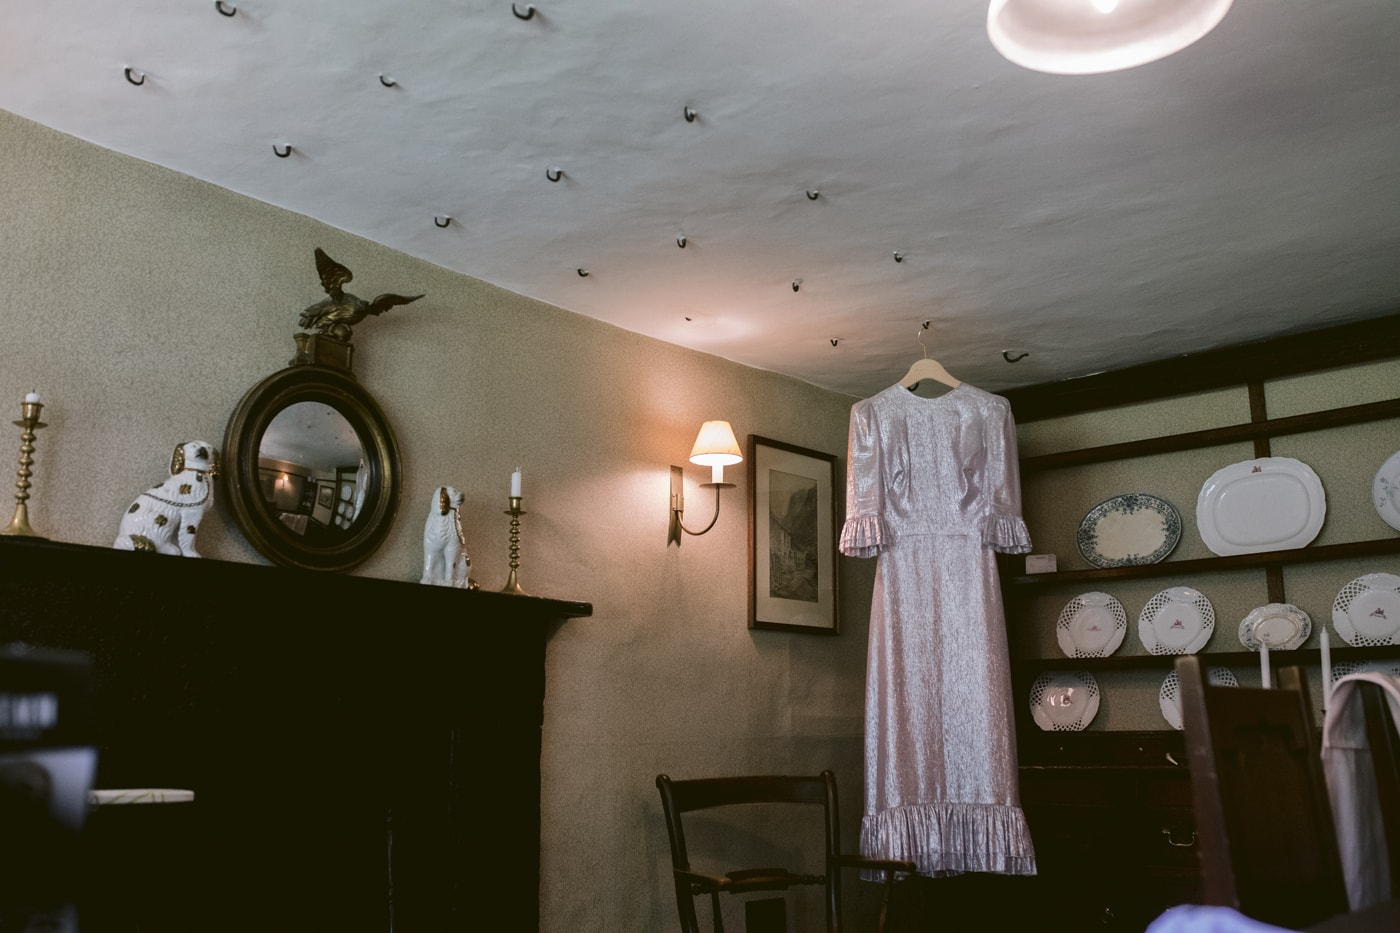 Decorative Room with Dress at Yew Tree Farm Wedding